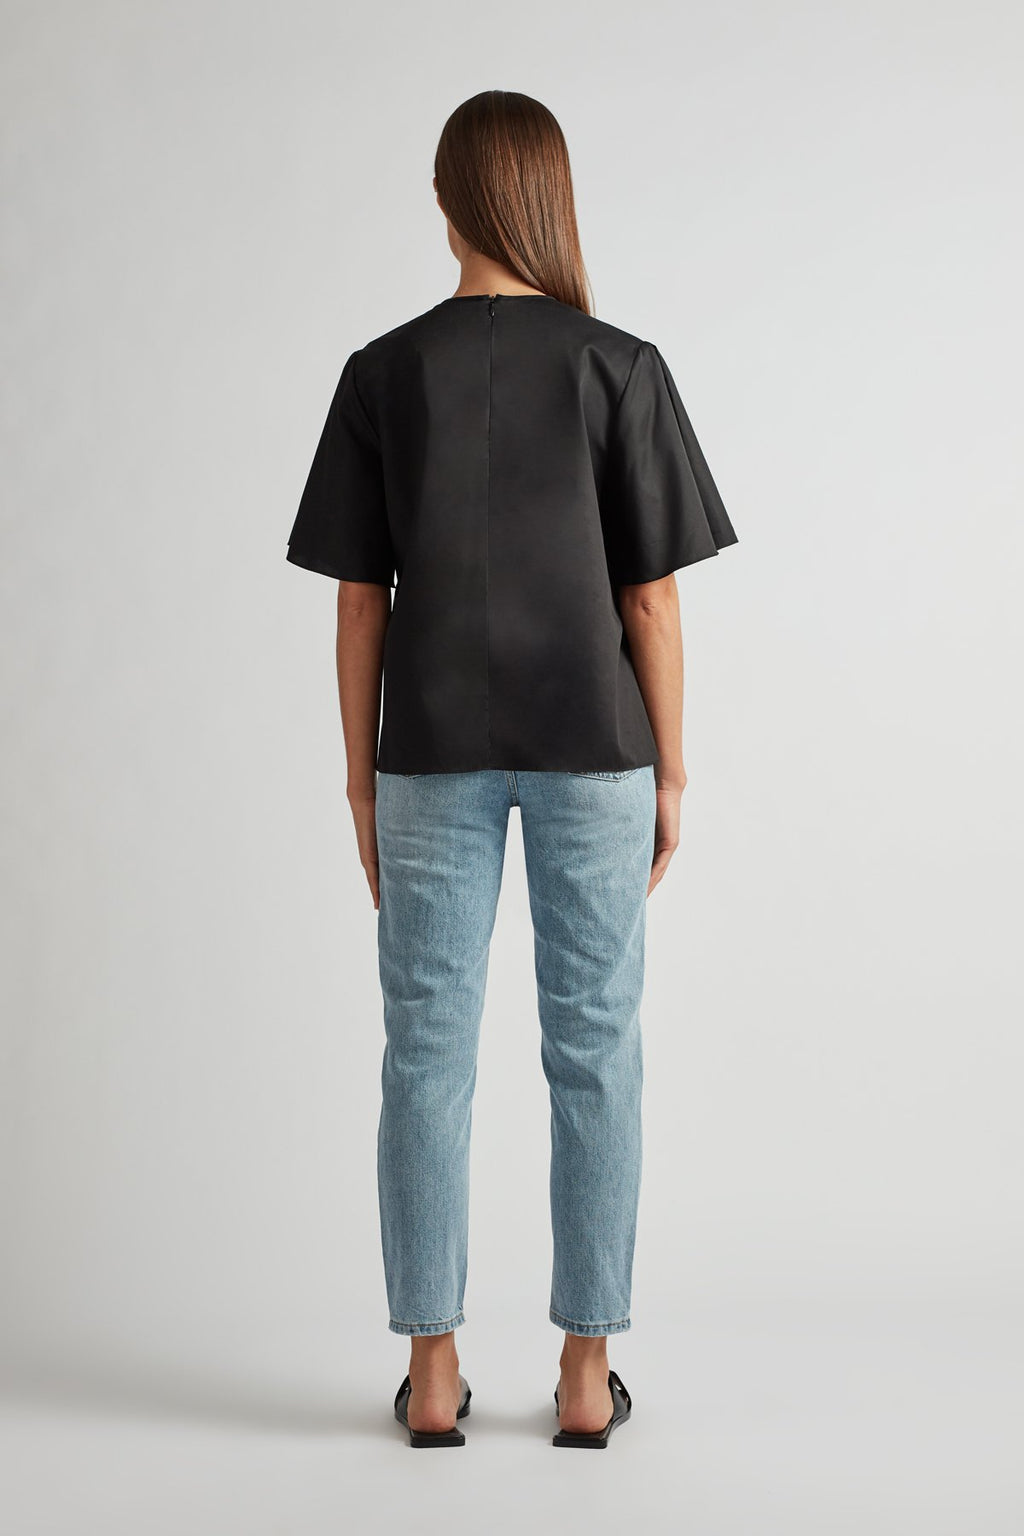 Camilla And Marc / Willis Top / Black